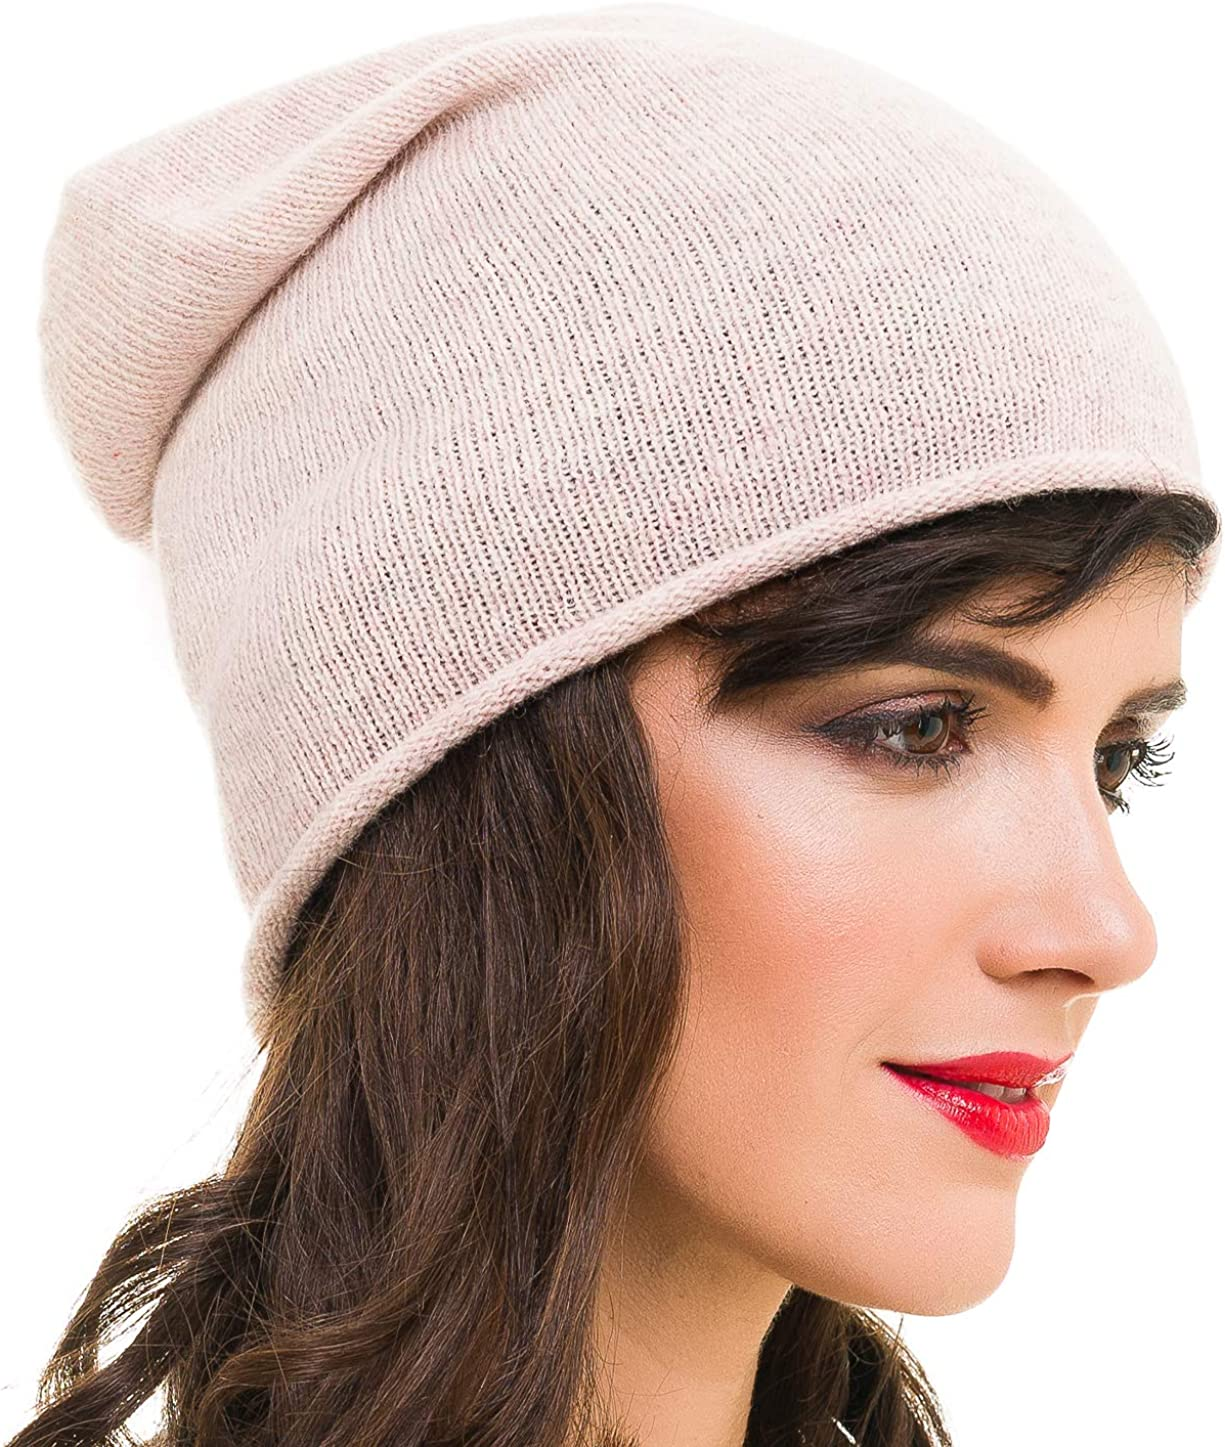 MELIFLUOS DESIGNED IN SPAIN Beanie for Women Solid Color Hat Skull Skully Cap Toboggan Fashion for Spring Fall